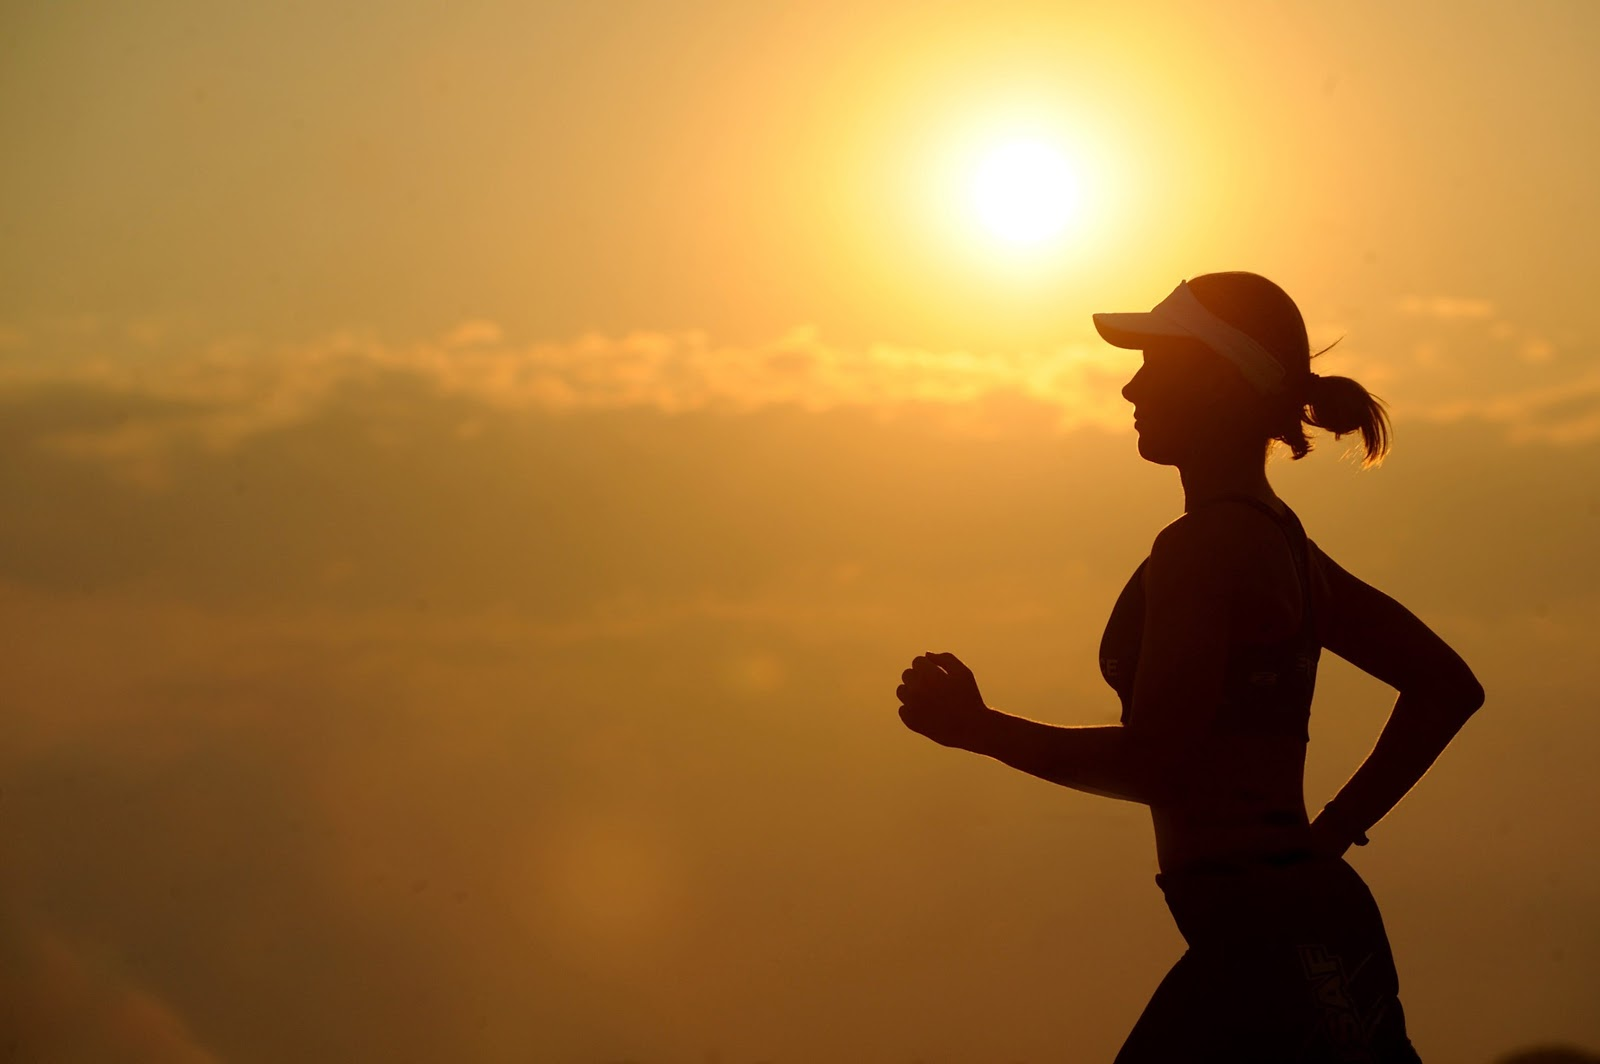 The silhouette of a woman exercising in the morning to help treat her insomnia.